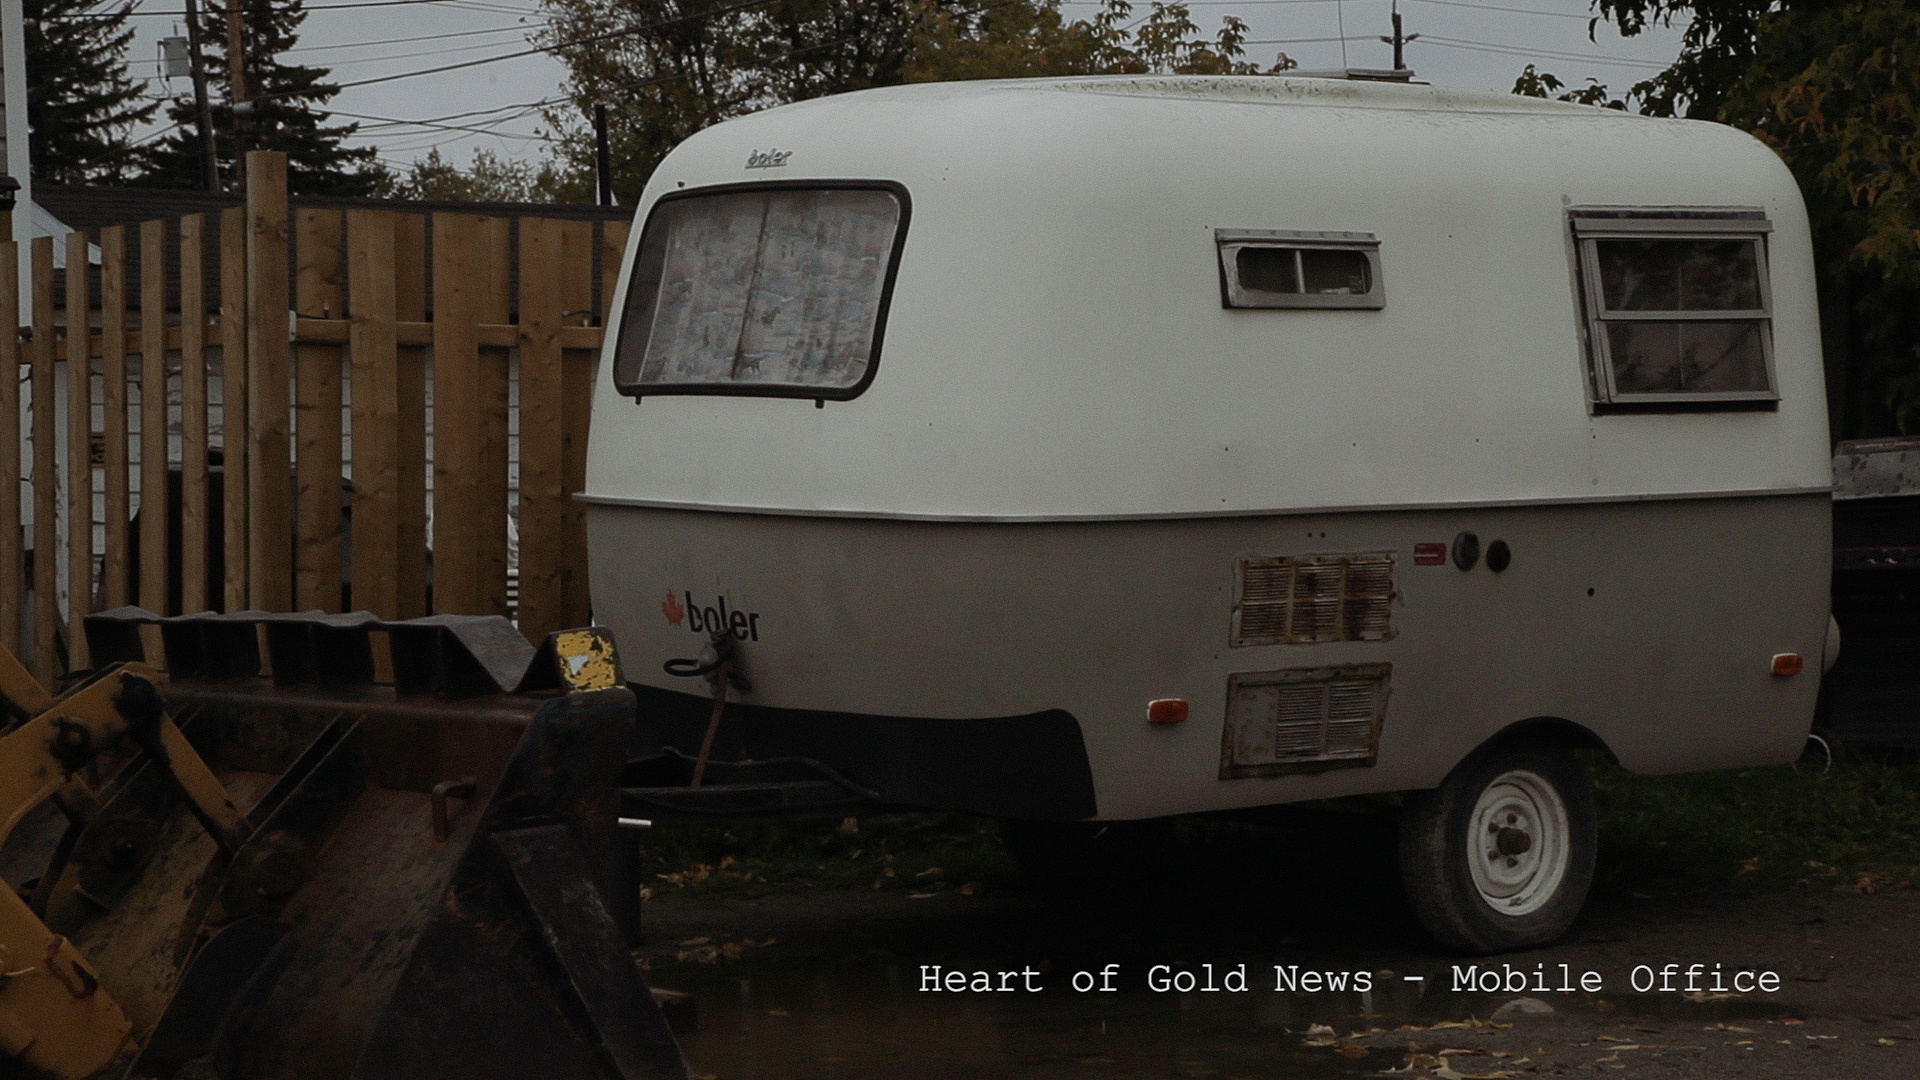 Heart of Gold News - Mobile Office